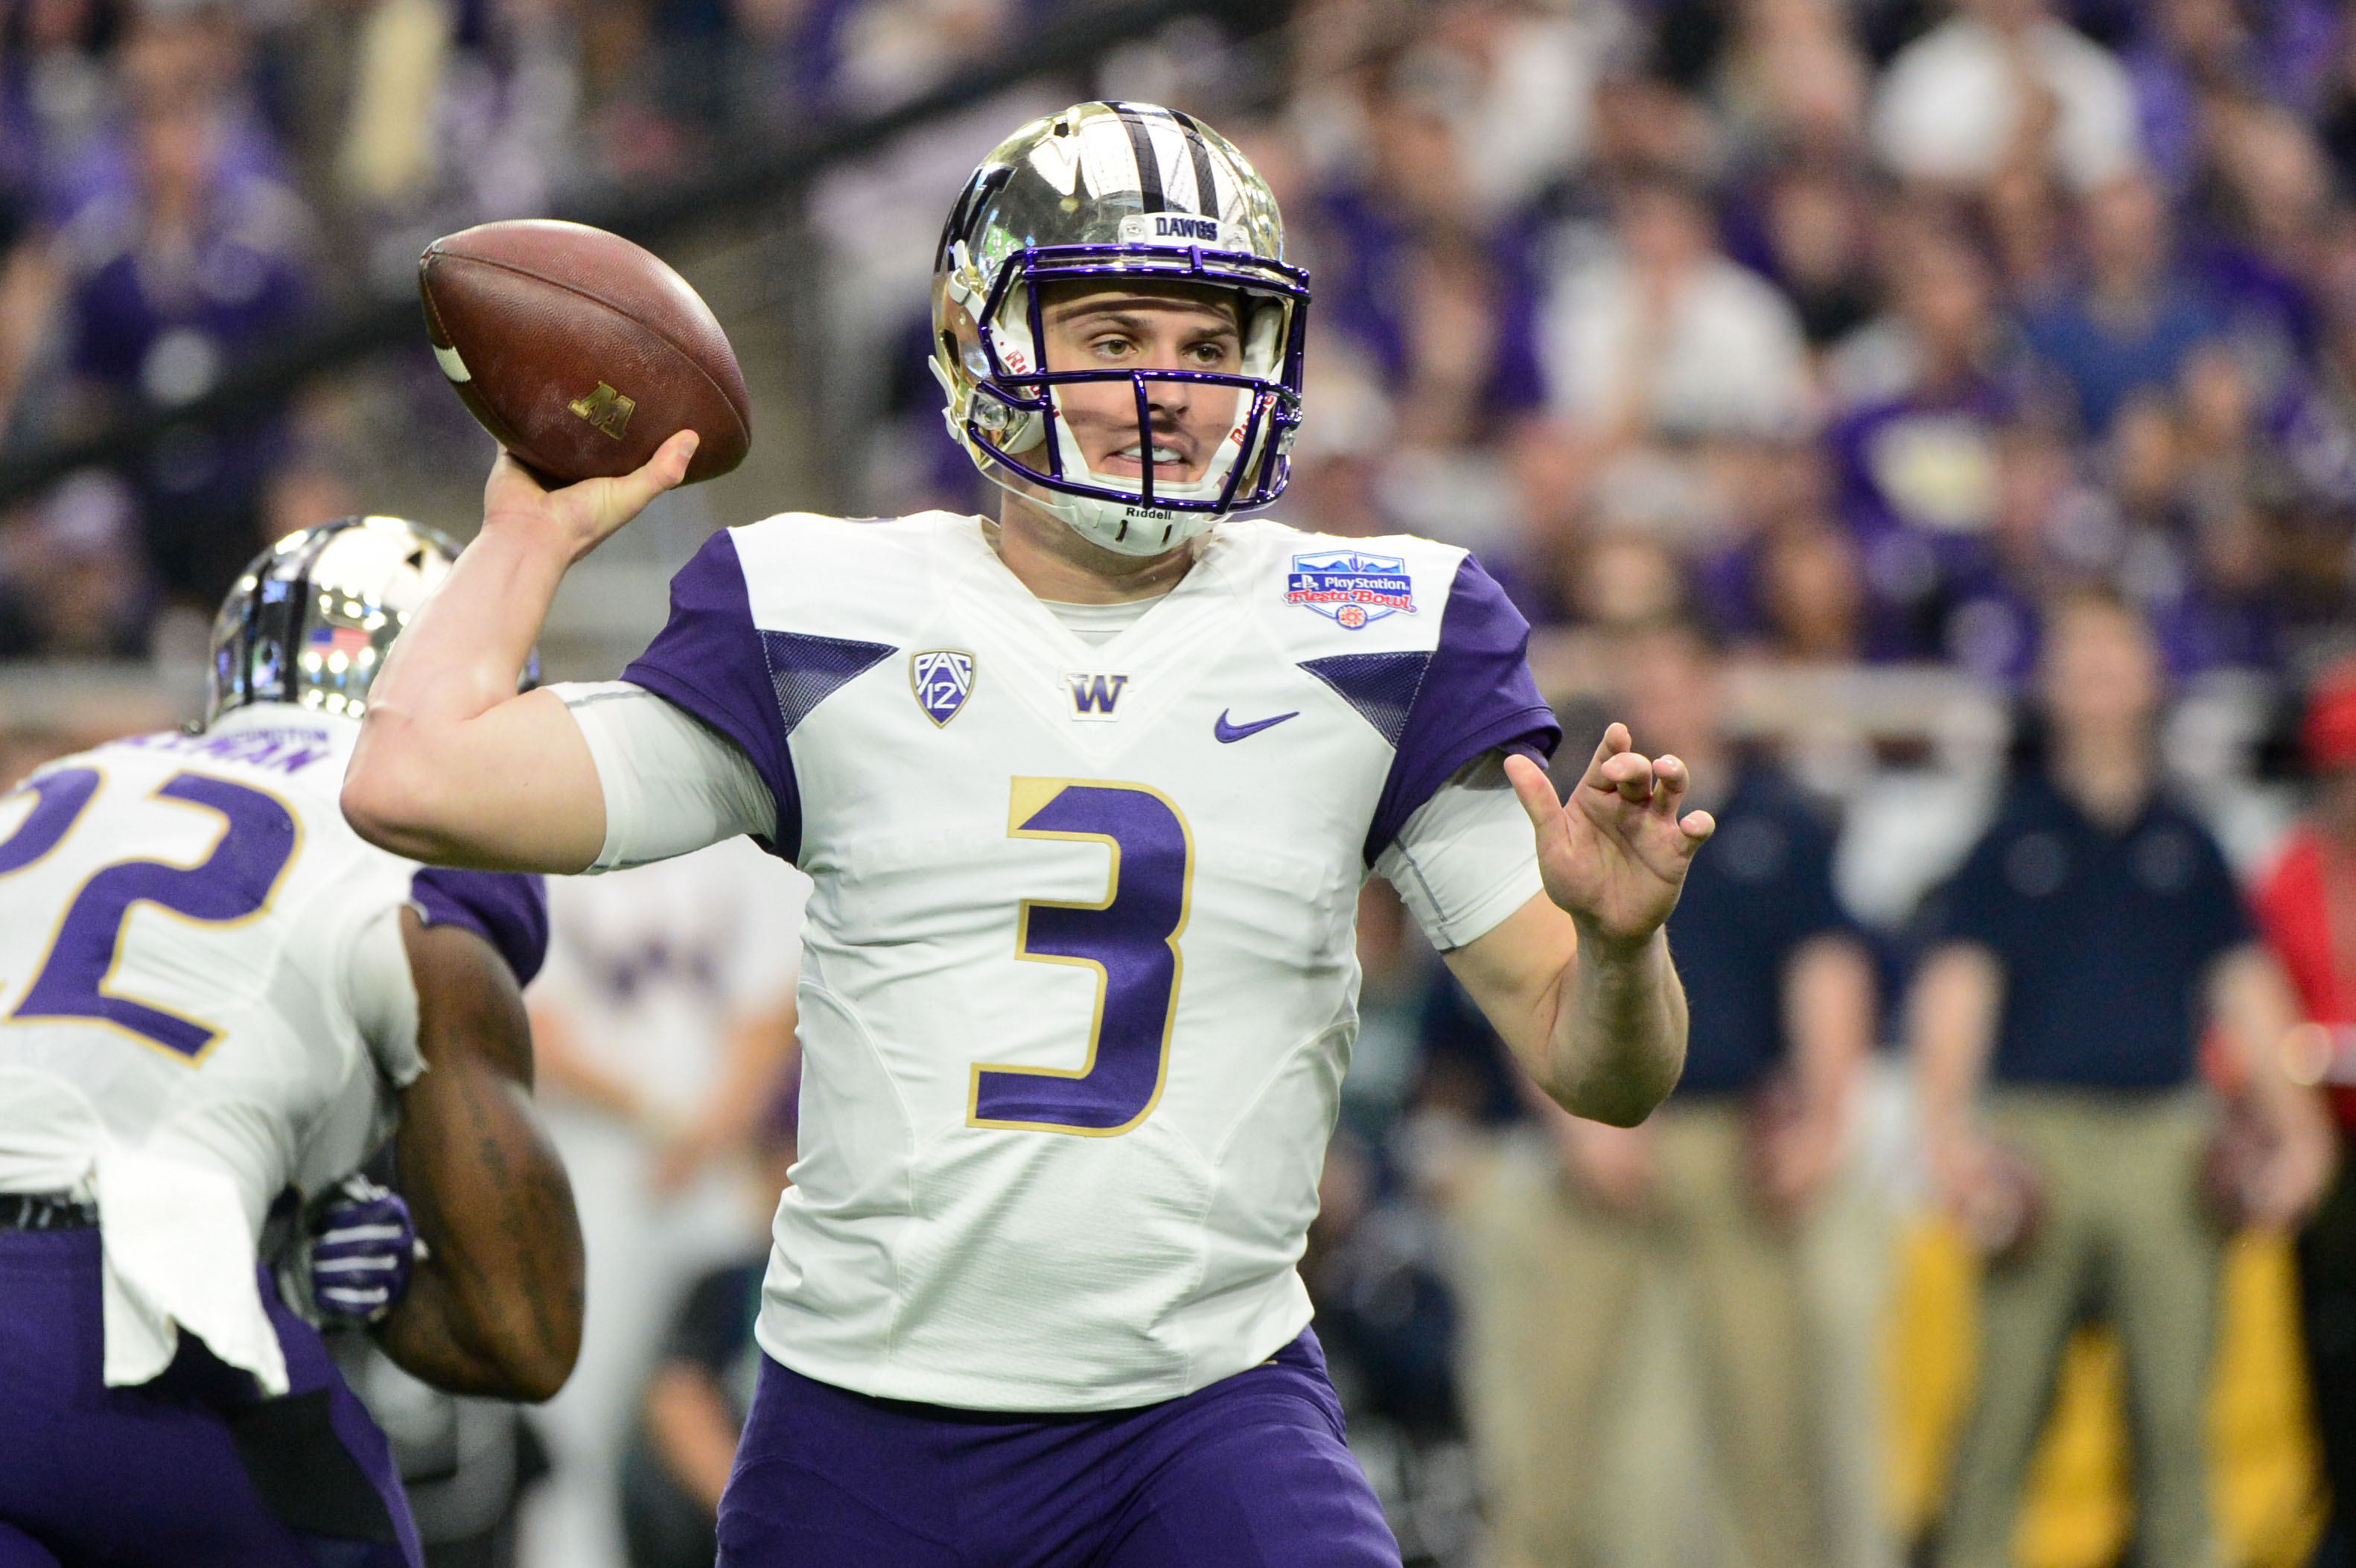 Dec 30, 2017; Glendale, AZ, USA; Washington Huskies quarterback Jake Browning (3) throws a pass during the first half against the Penn State Nittany Lions during the 2017 Fiesta Bowl at University of Phoenix Stadium. Mandatory Credit: Matt Kartozian-USA TODAY Sports